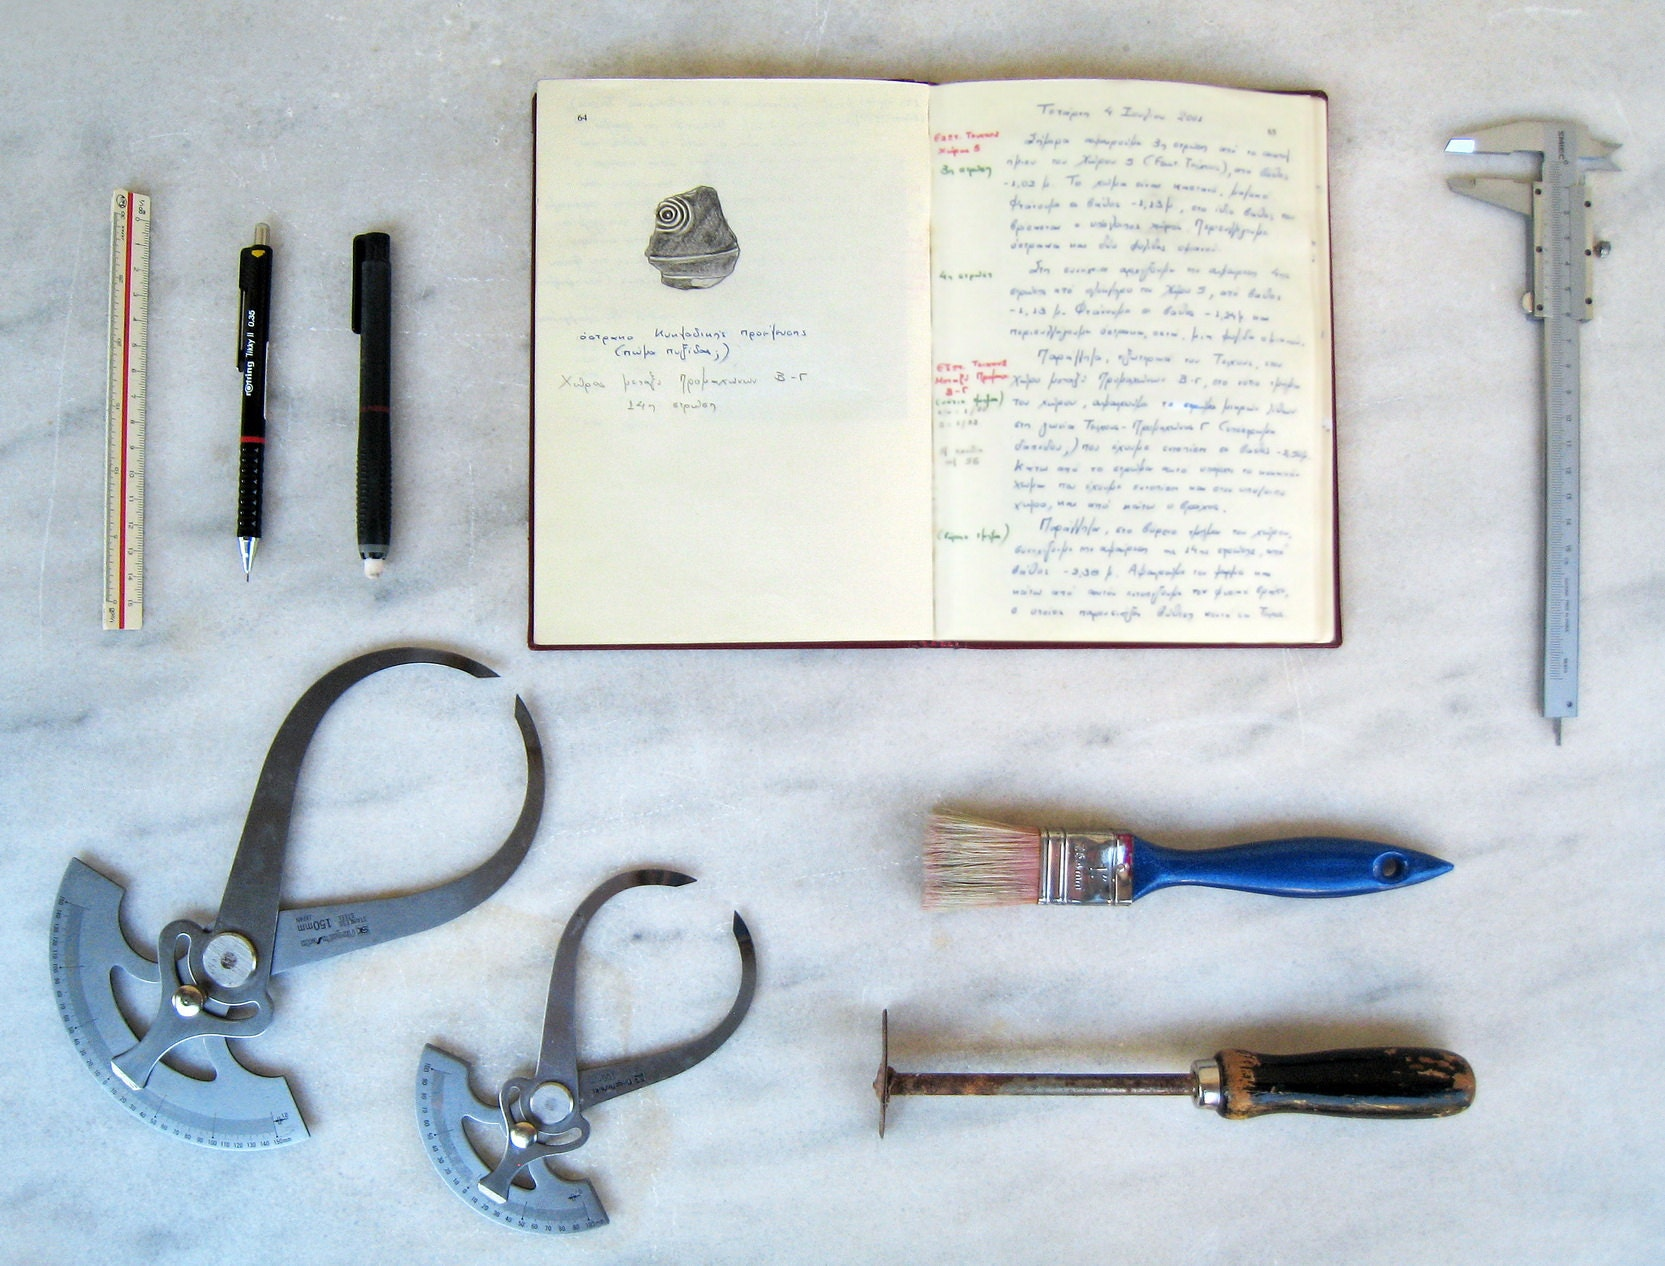 Her journal is one of her most valuable tools on a dig, along with brushes and metal instruments for cleaning and measuring findings